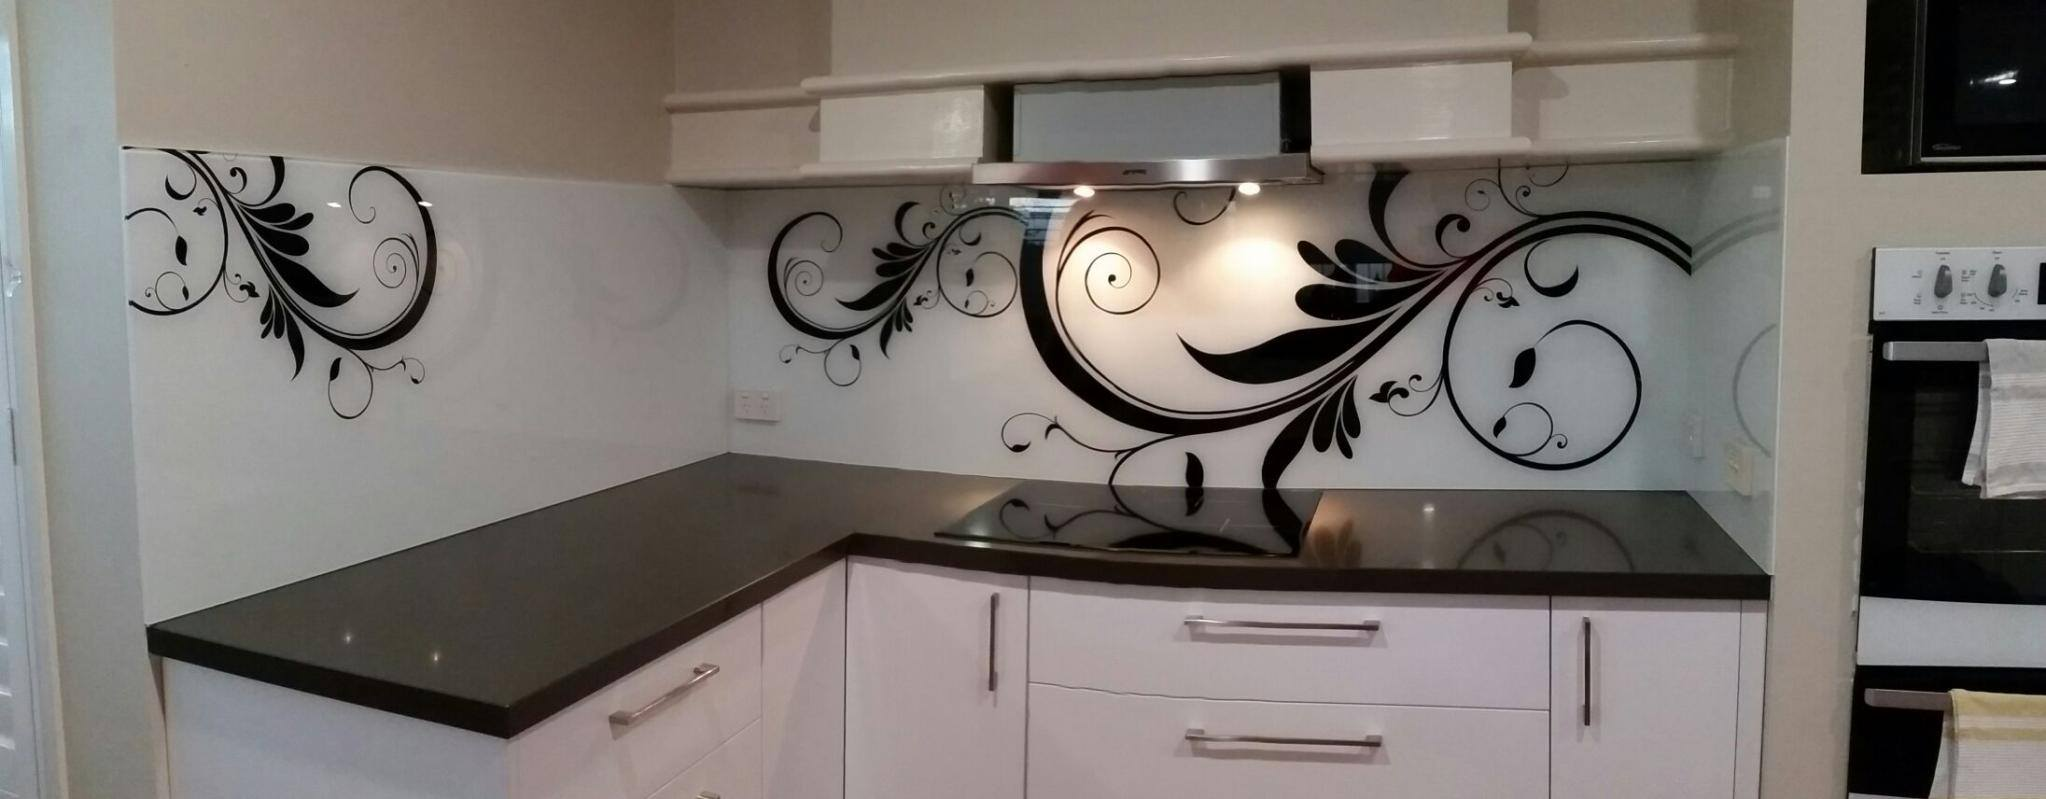 Printed Splashback - Art